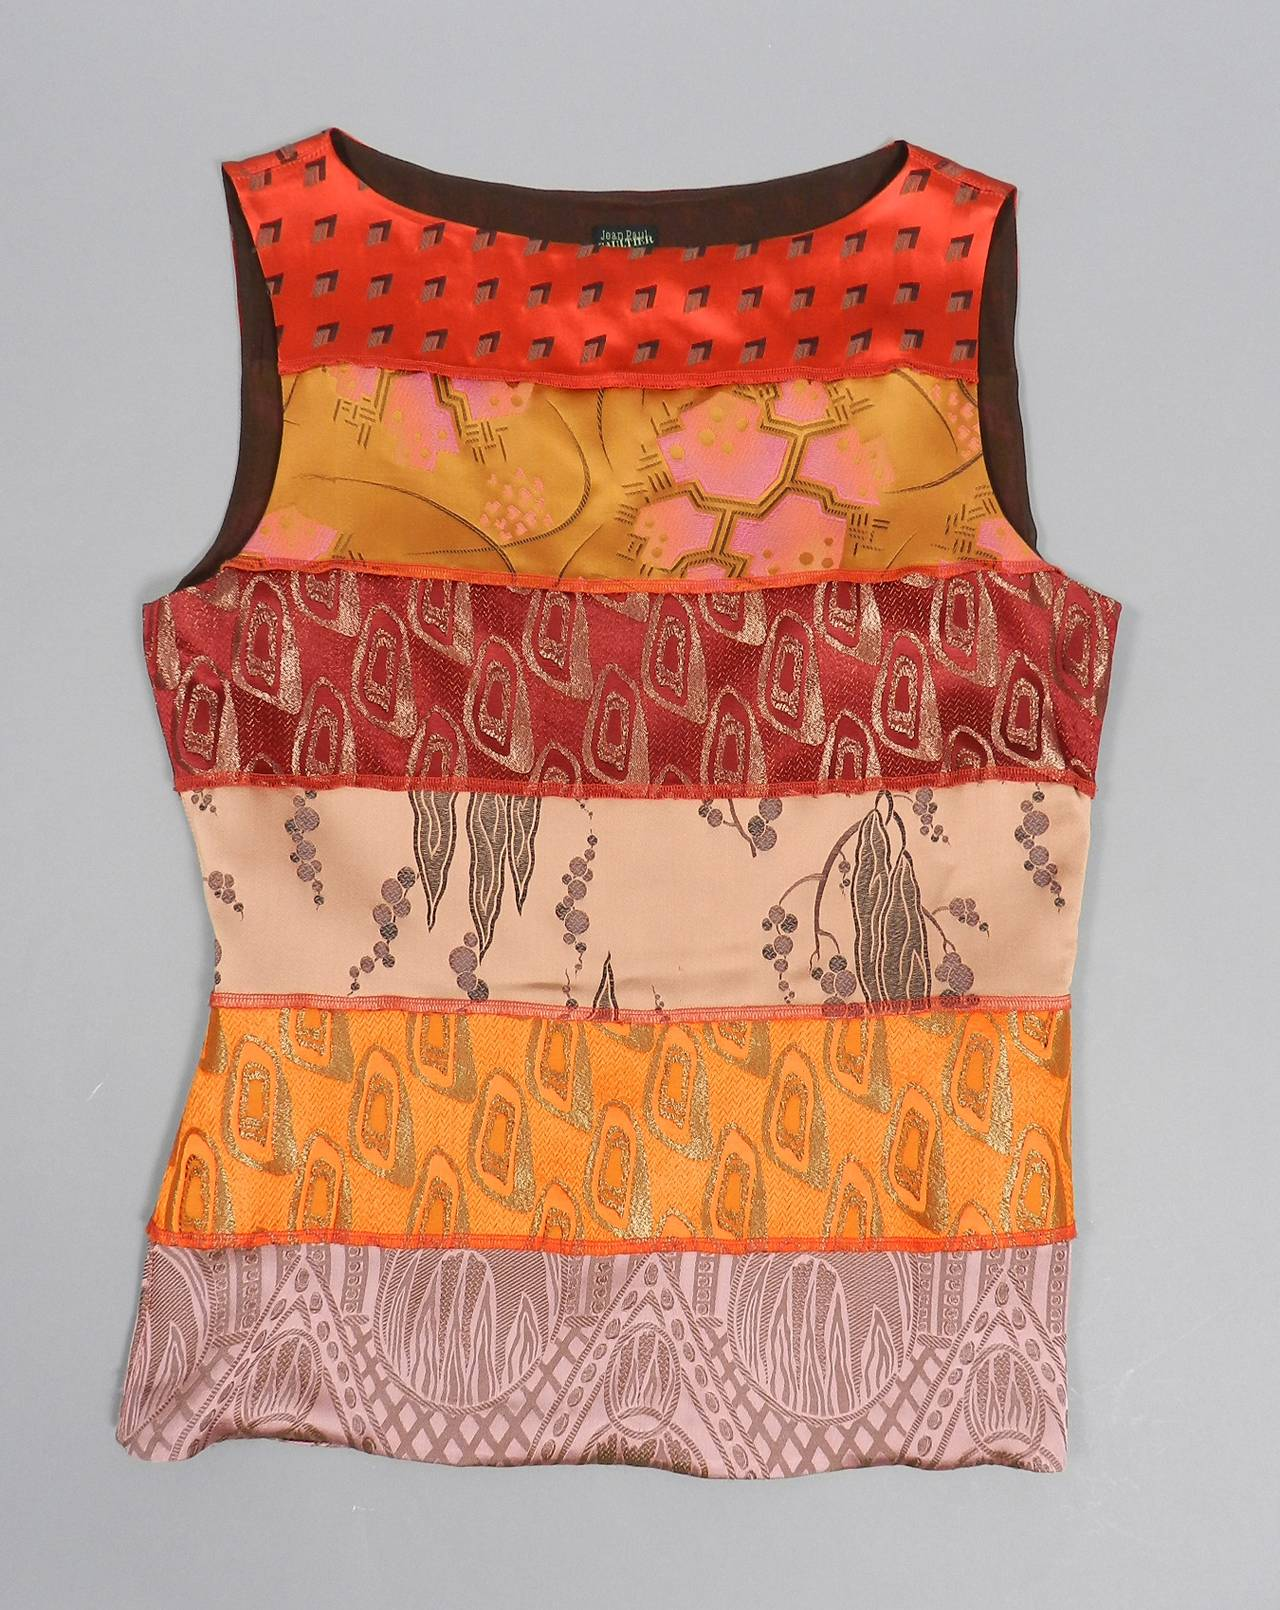 Jean Paul Gaultier Fall 2002 Runway Orange Pink Brocade Tank Top In Excellent Condition For Sale In Toronto, ON